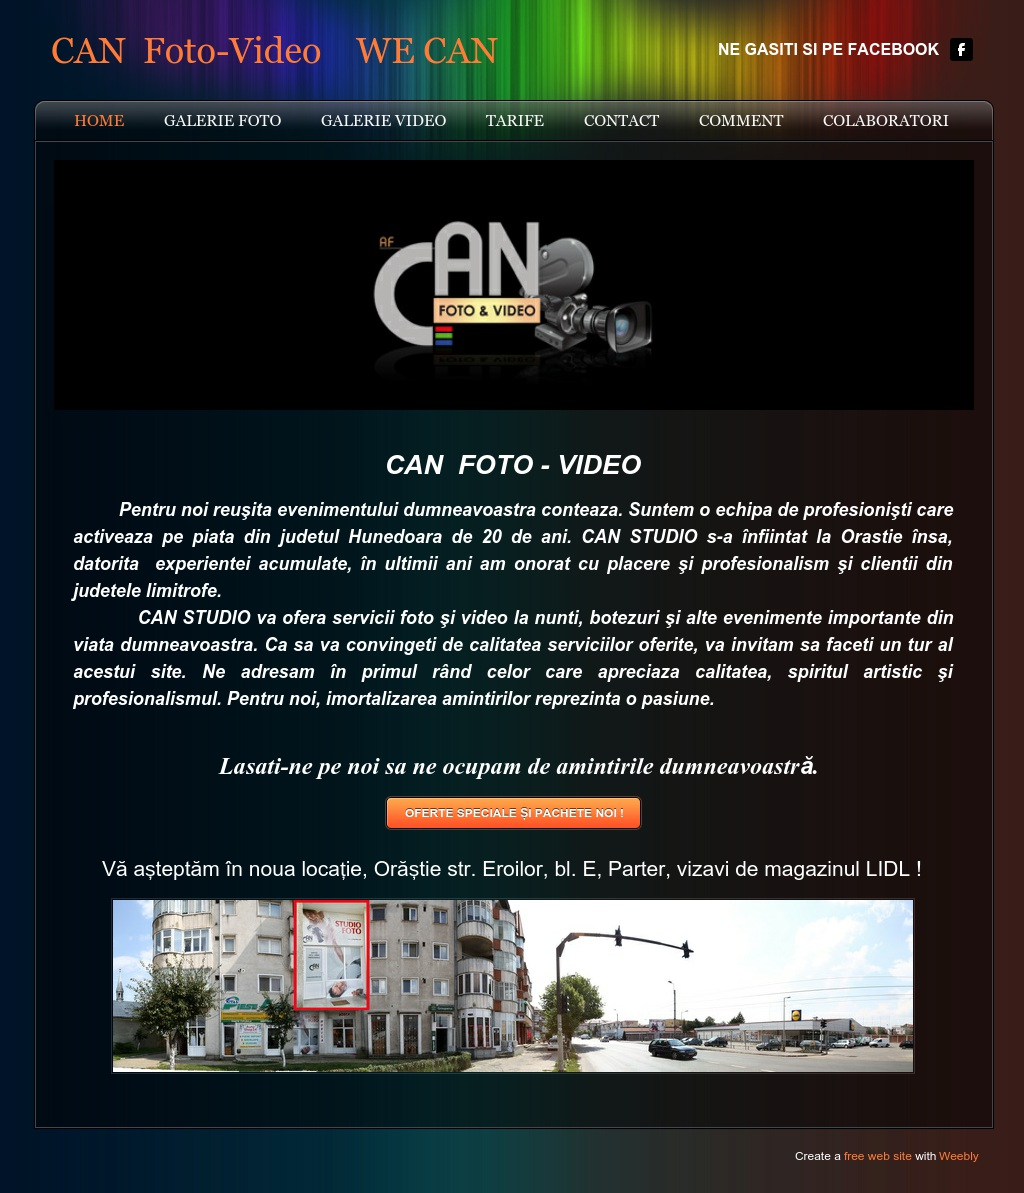 Can Foto Video